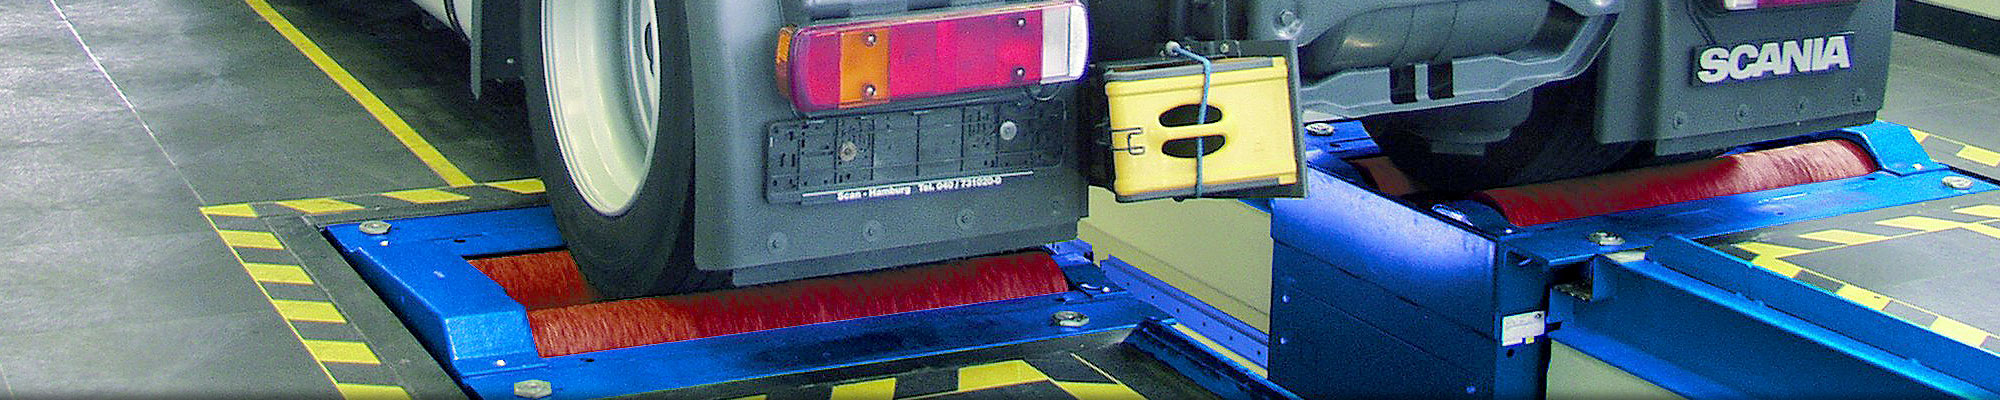 roller brake testers for trucks and buses